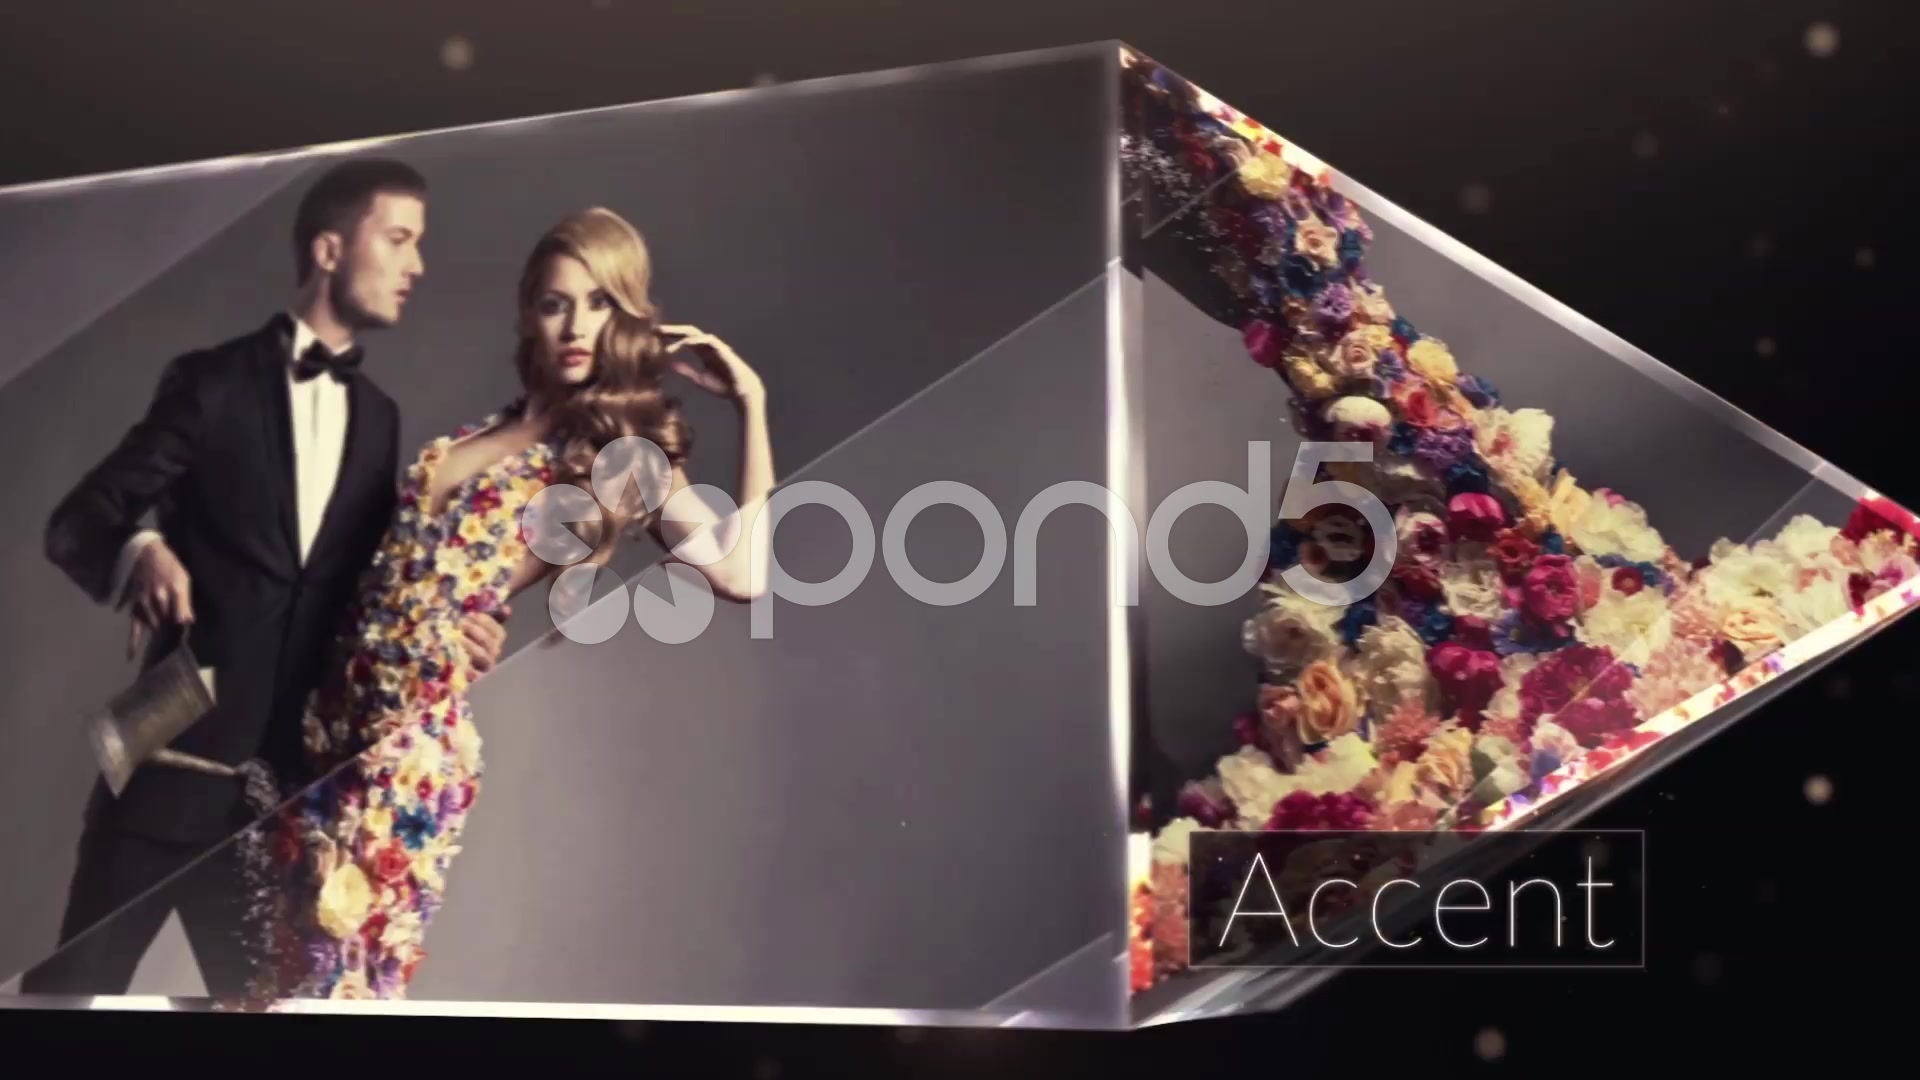 After Effects Project - Pond5 Accent Crystal Modern Slideshow 56542319